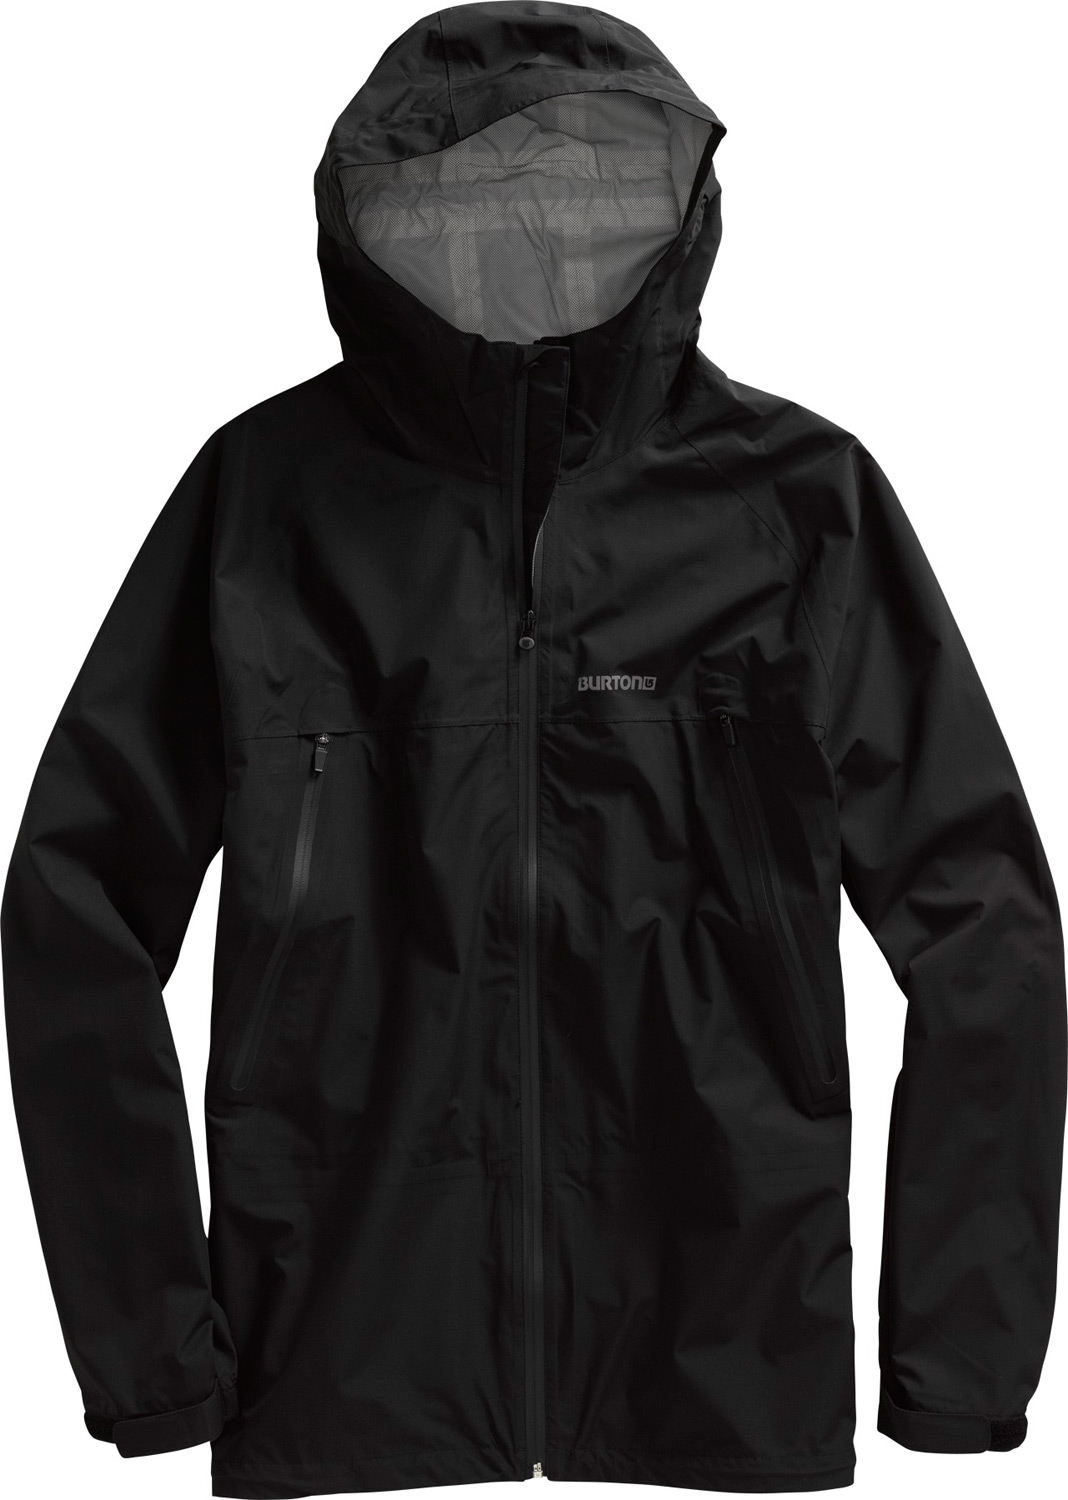 Snowboard Lightweight packable performance that will not guzzle your gas money.Key Features of the Burton 2.5L Slick Snowboard Jacket:  10,000mm Waterproof  10,000g Breathability  DRYRIDE Durashell  Lightweight, Packable Design  Fully Taped Seams  Fulltime Contour Hood  Adjustable Cuffs  Printed Waterproof Zippers - $77.95